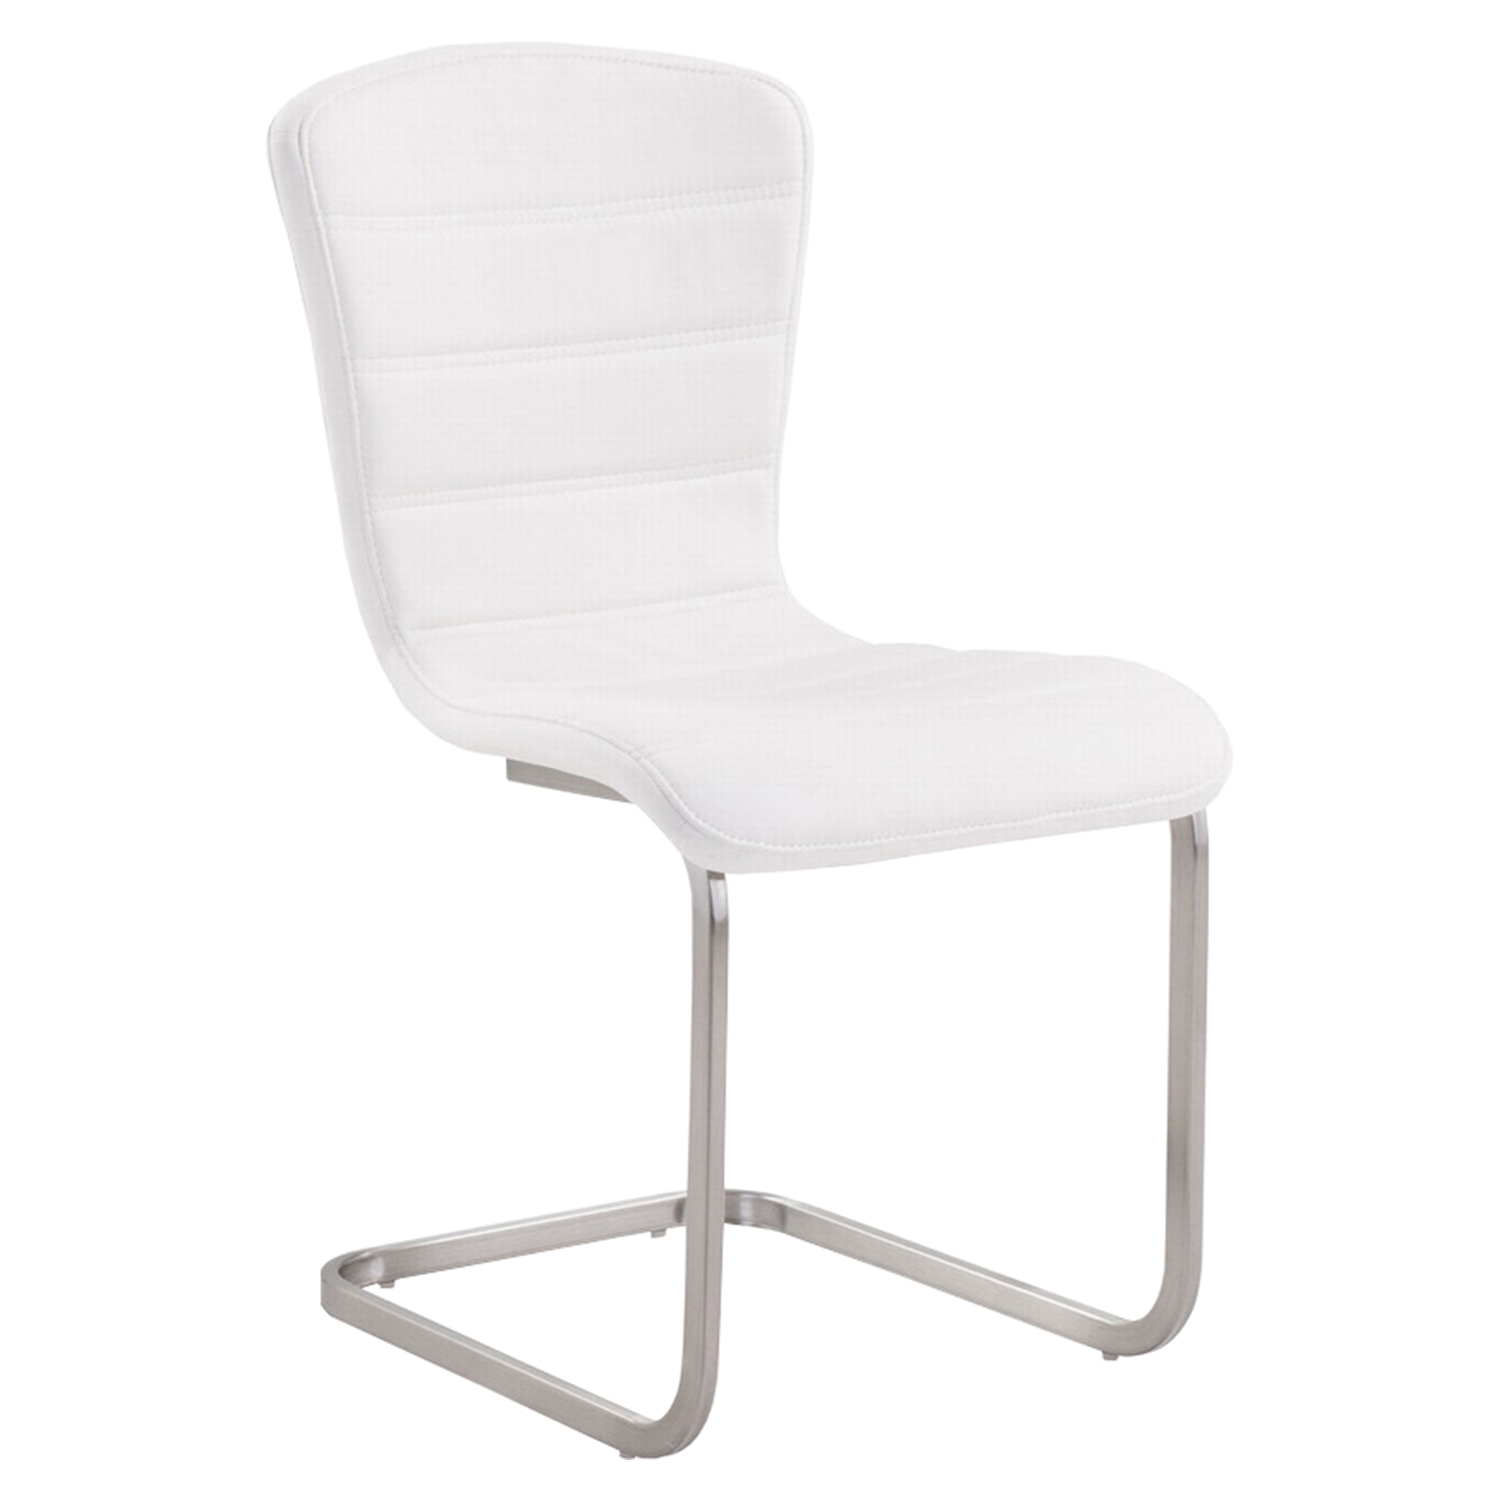 Cameo Modern Side Chair - White (Set of 2) - AL-LCCASIWH